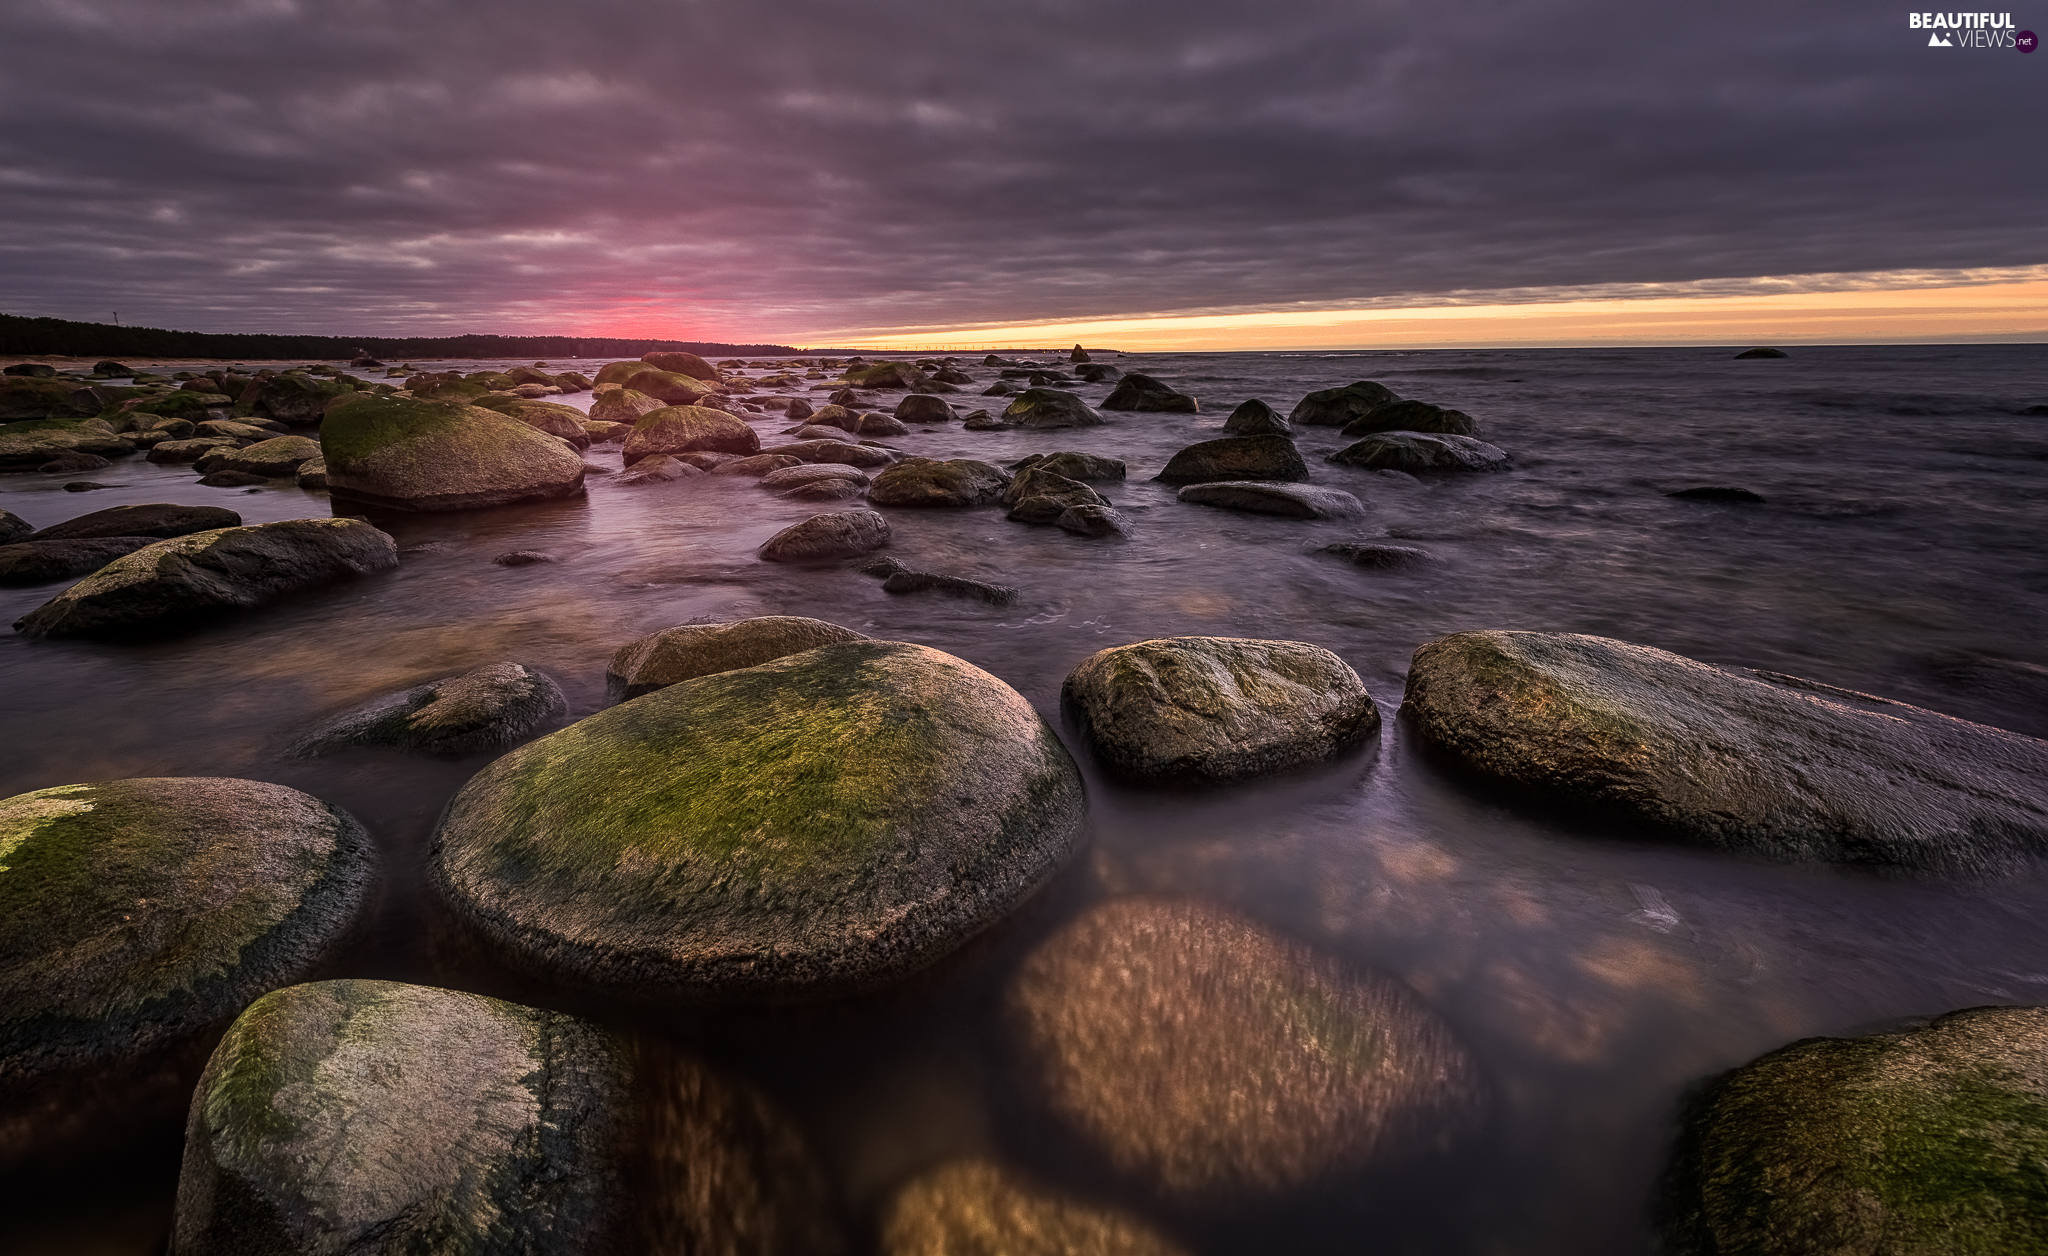 coast, Great Sunsets, mossy, Stones, sea